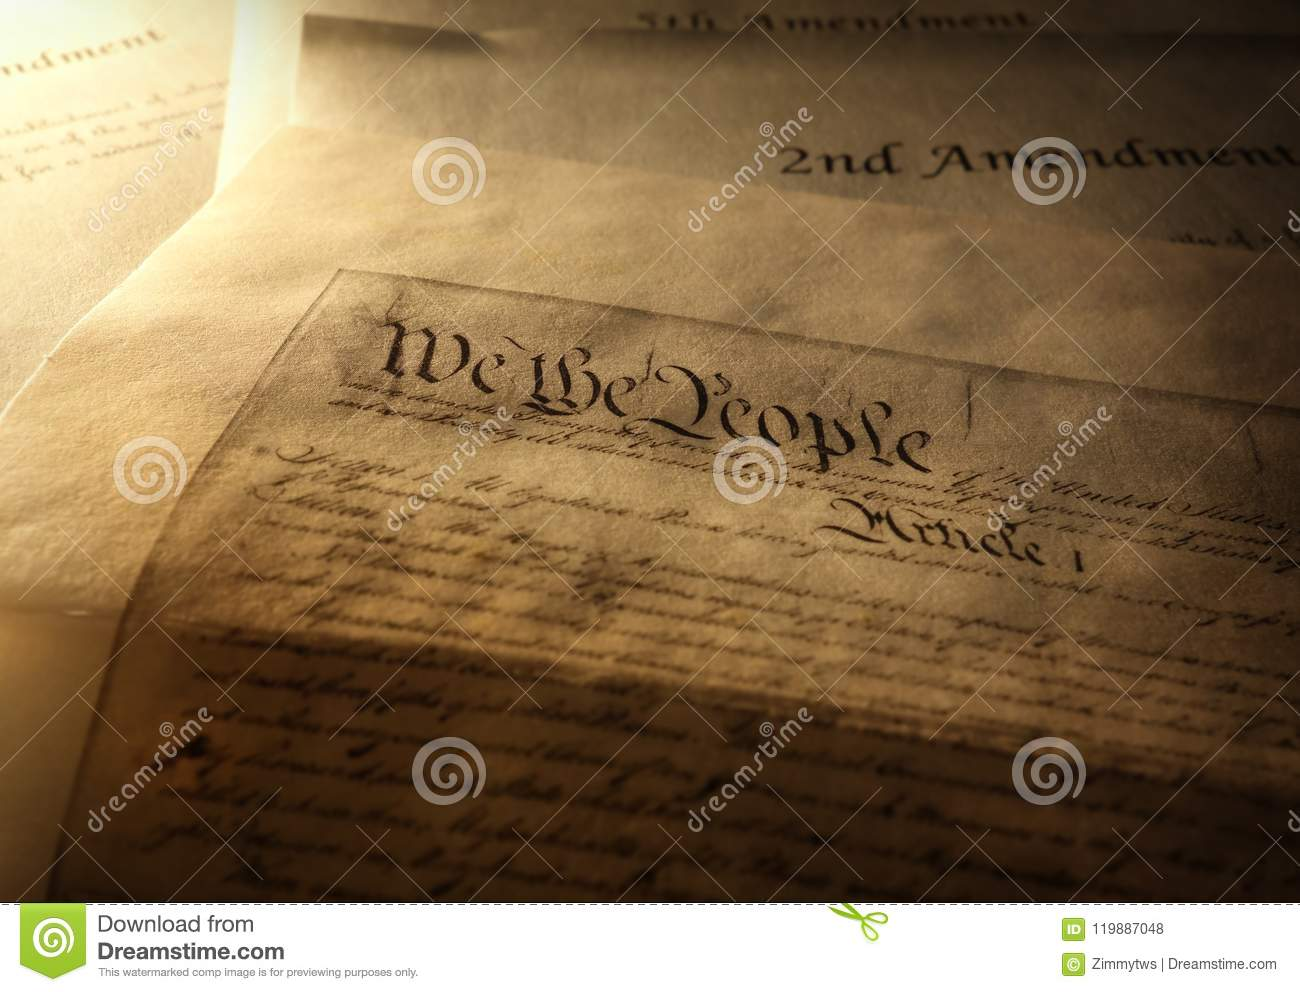 Article One Of The Us Cons Ution With 2nd And 5th Amendments In The Background